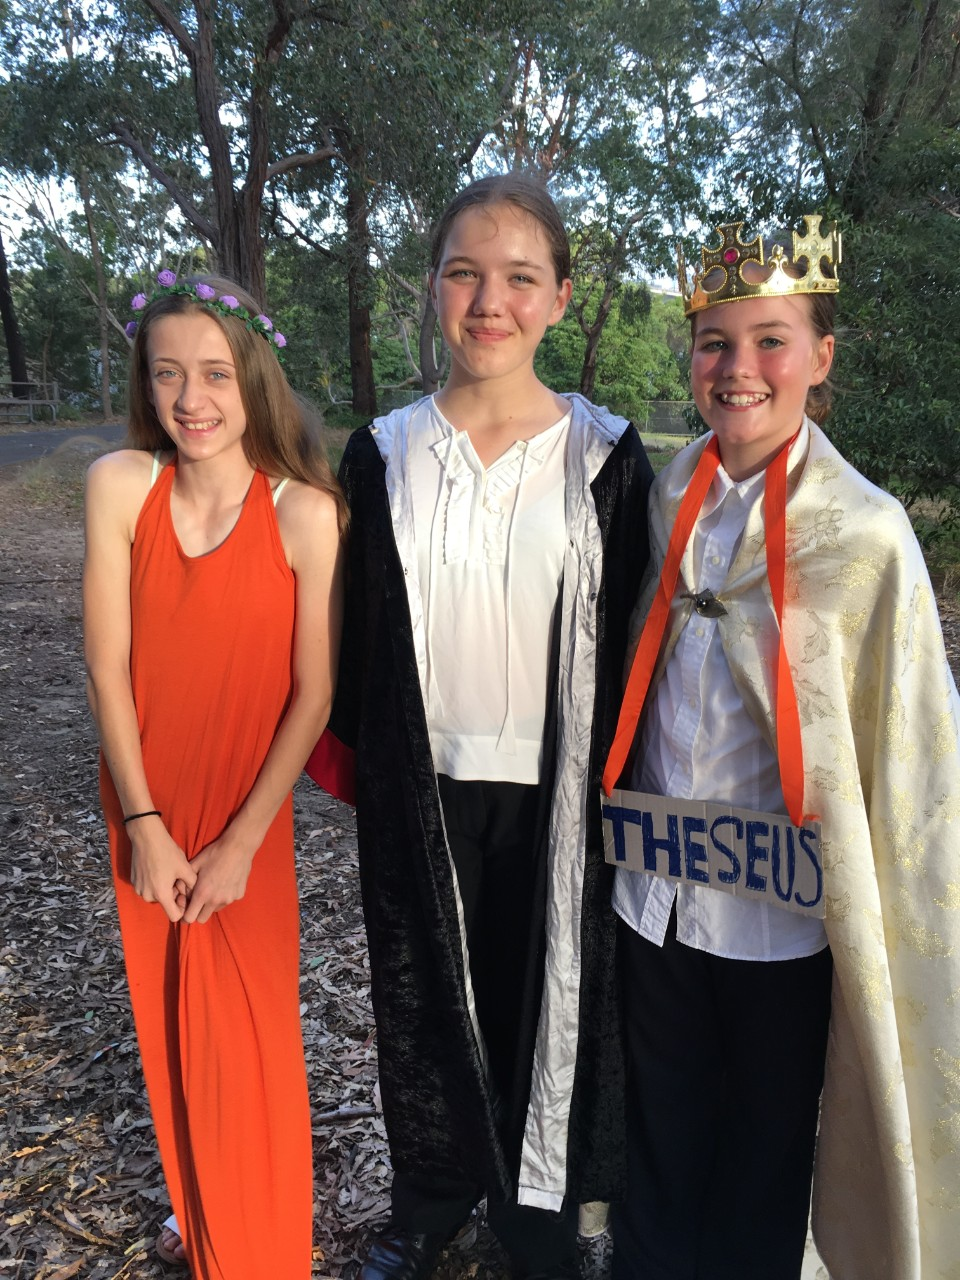 Pupils in costume